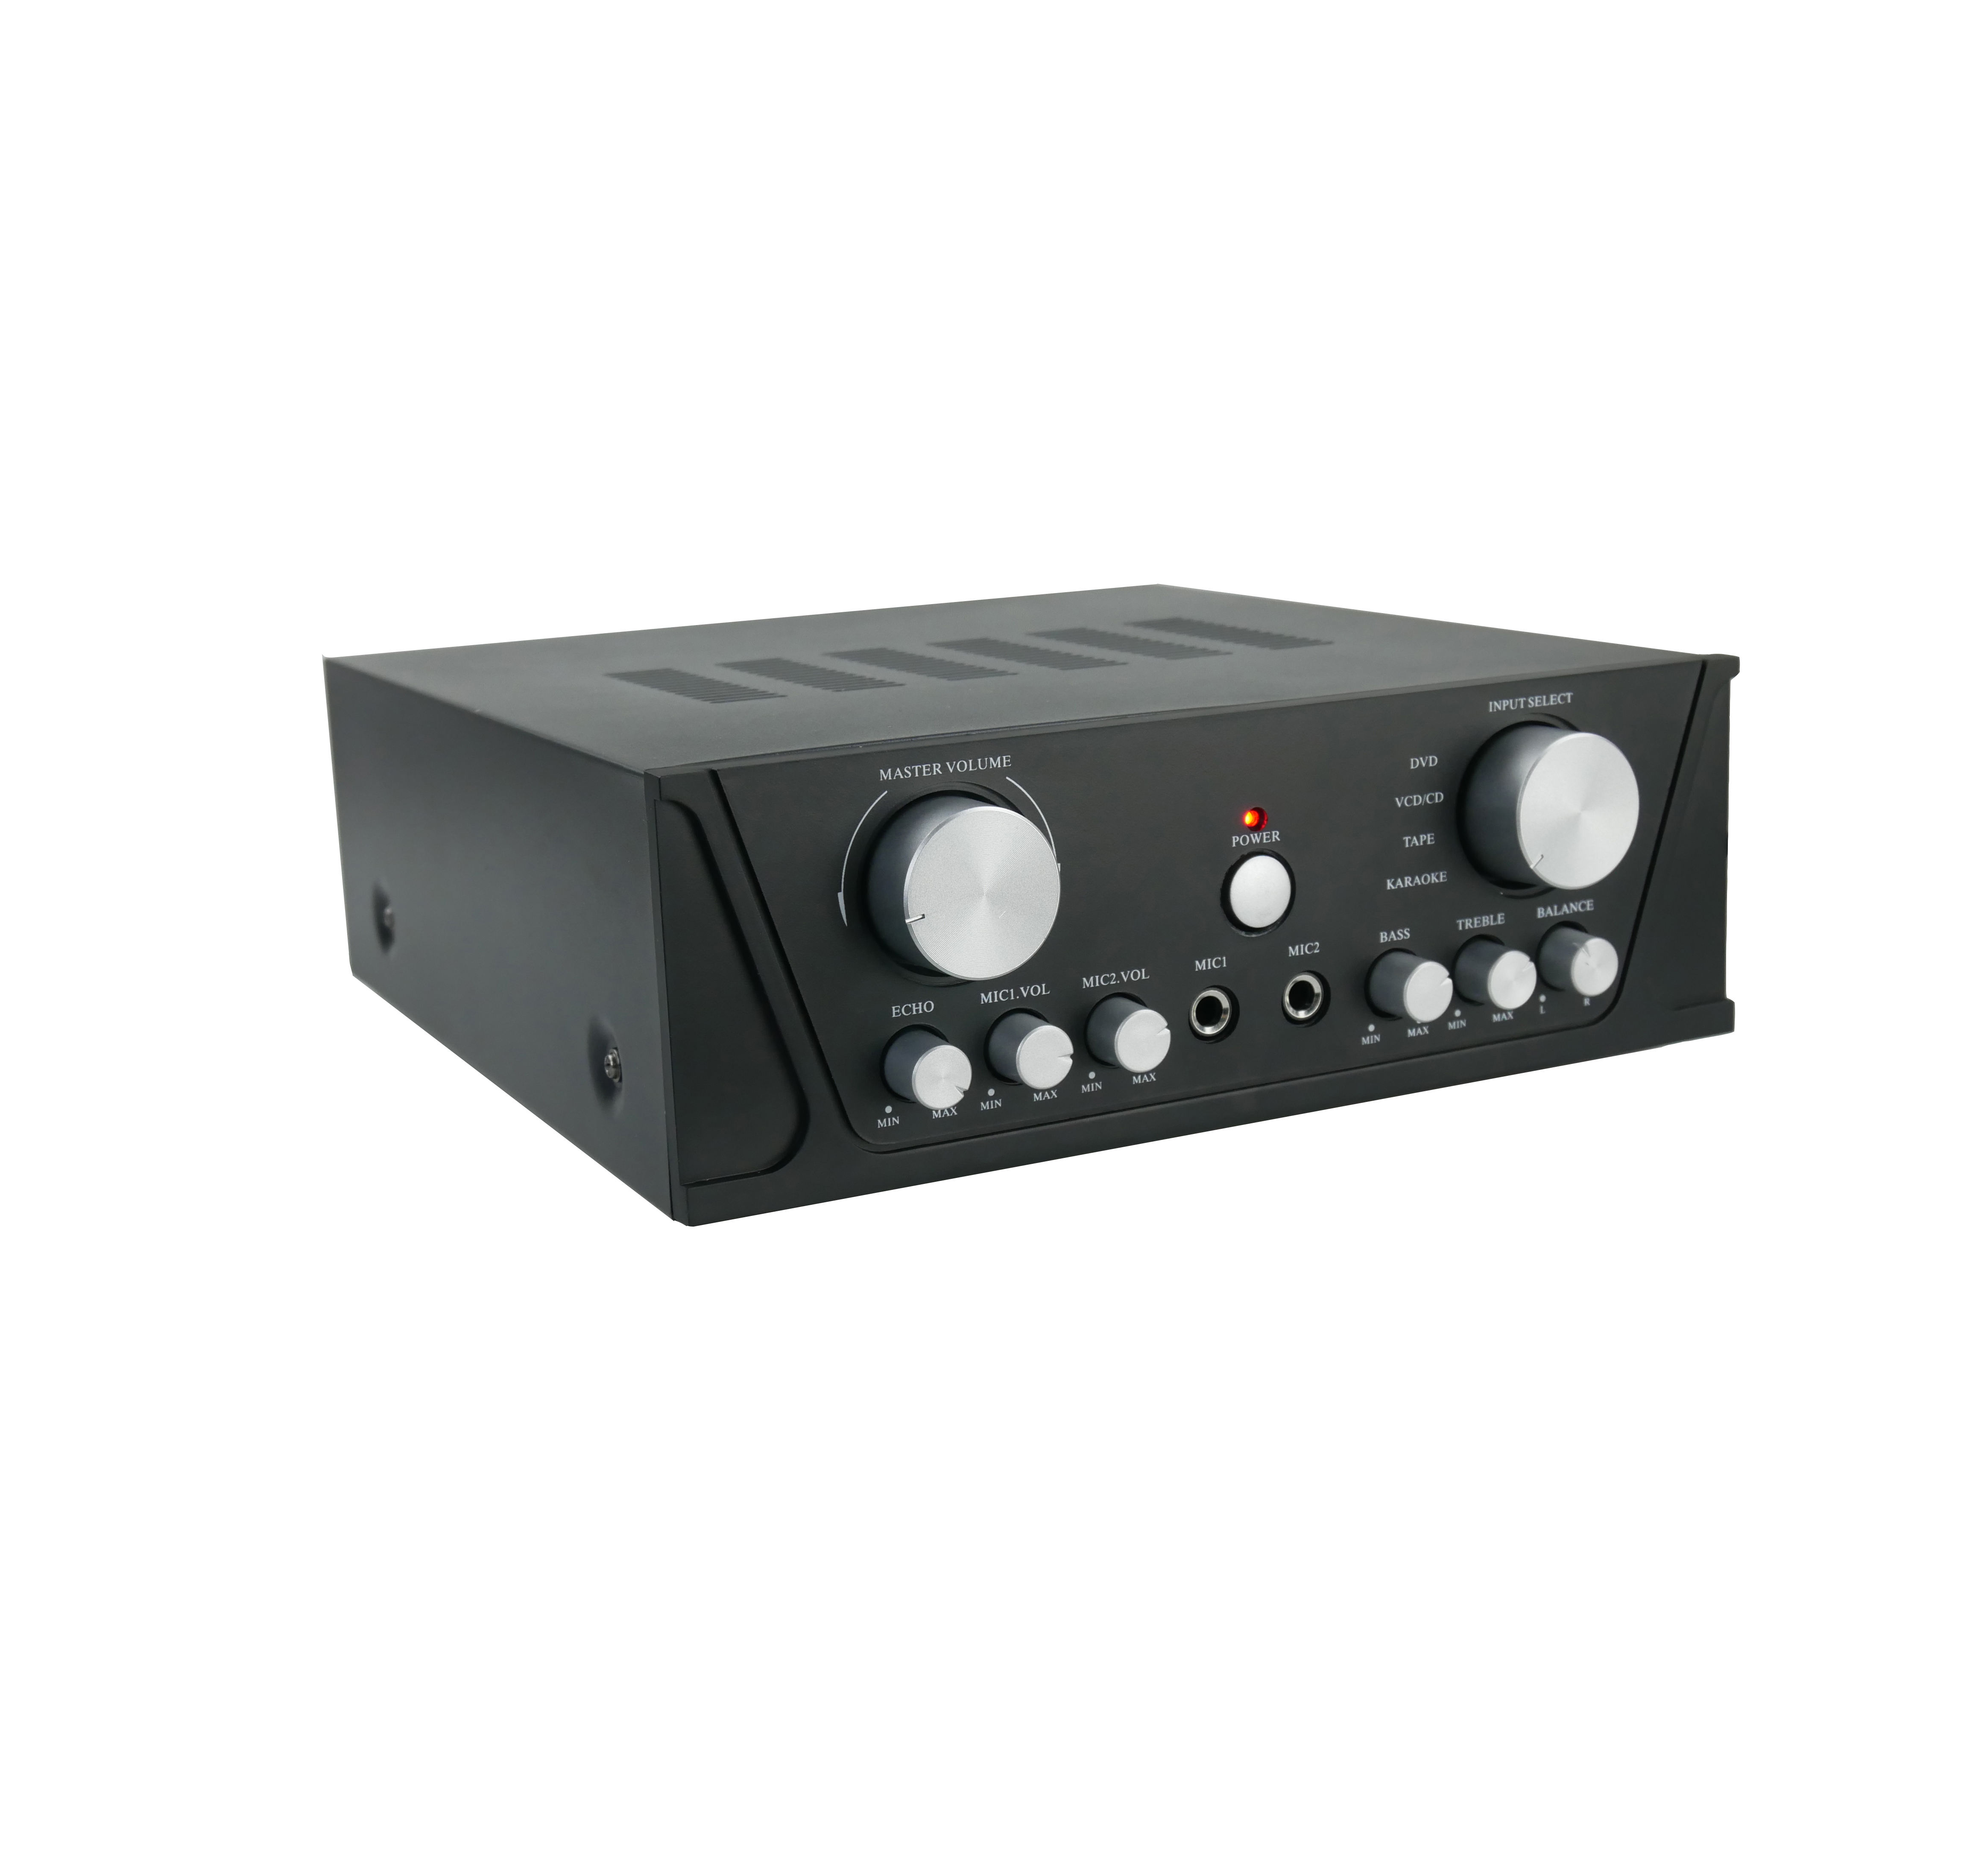 Bule Power LED Profesional 2X50 W Power Home Amplifier Murah Harga <span class=keywords><strong>Karaoke</strong></span> System